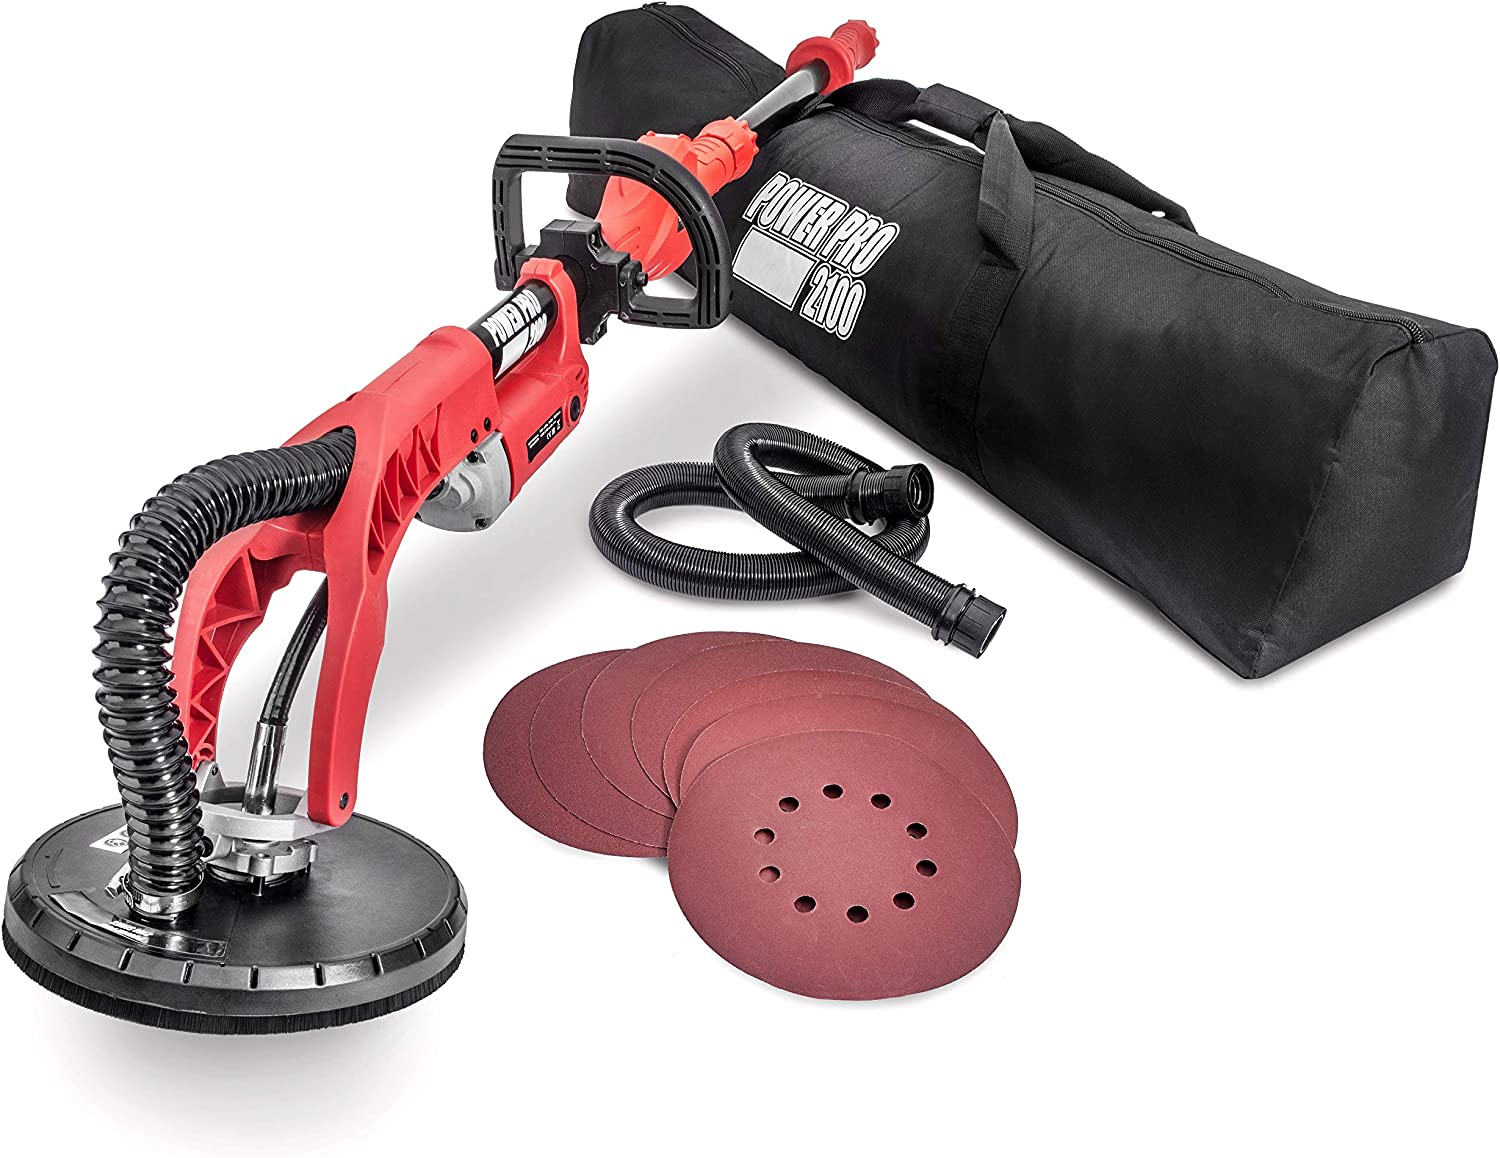 6. Power-Pro 2100 Variable Speed Drywall Sander